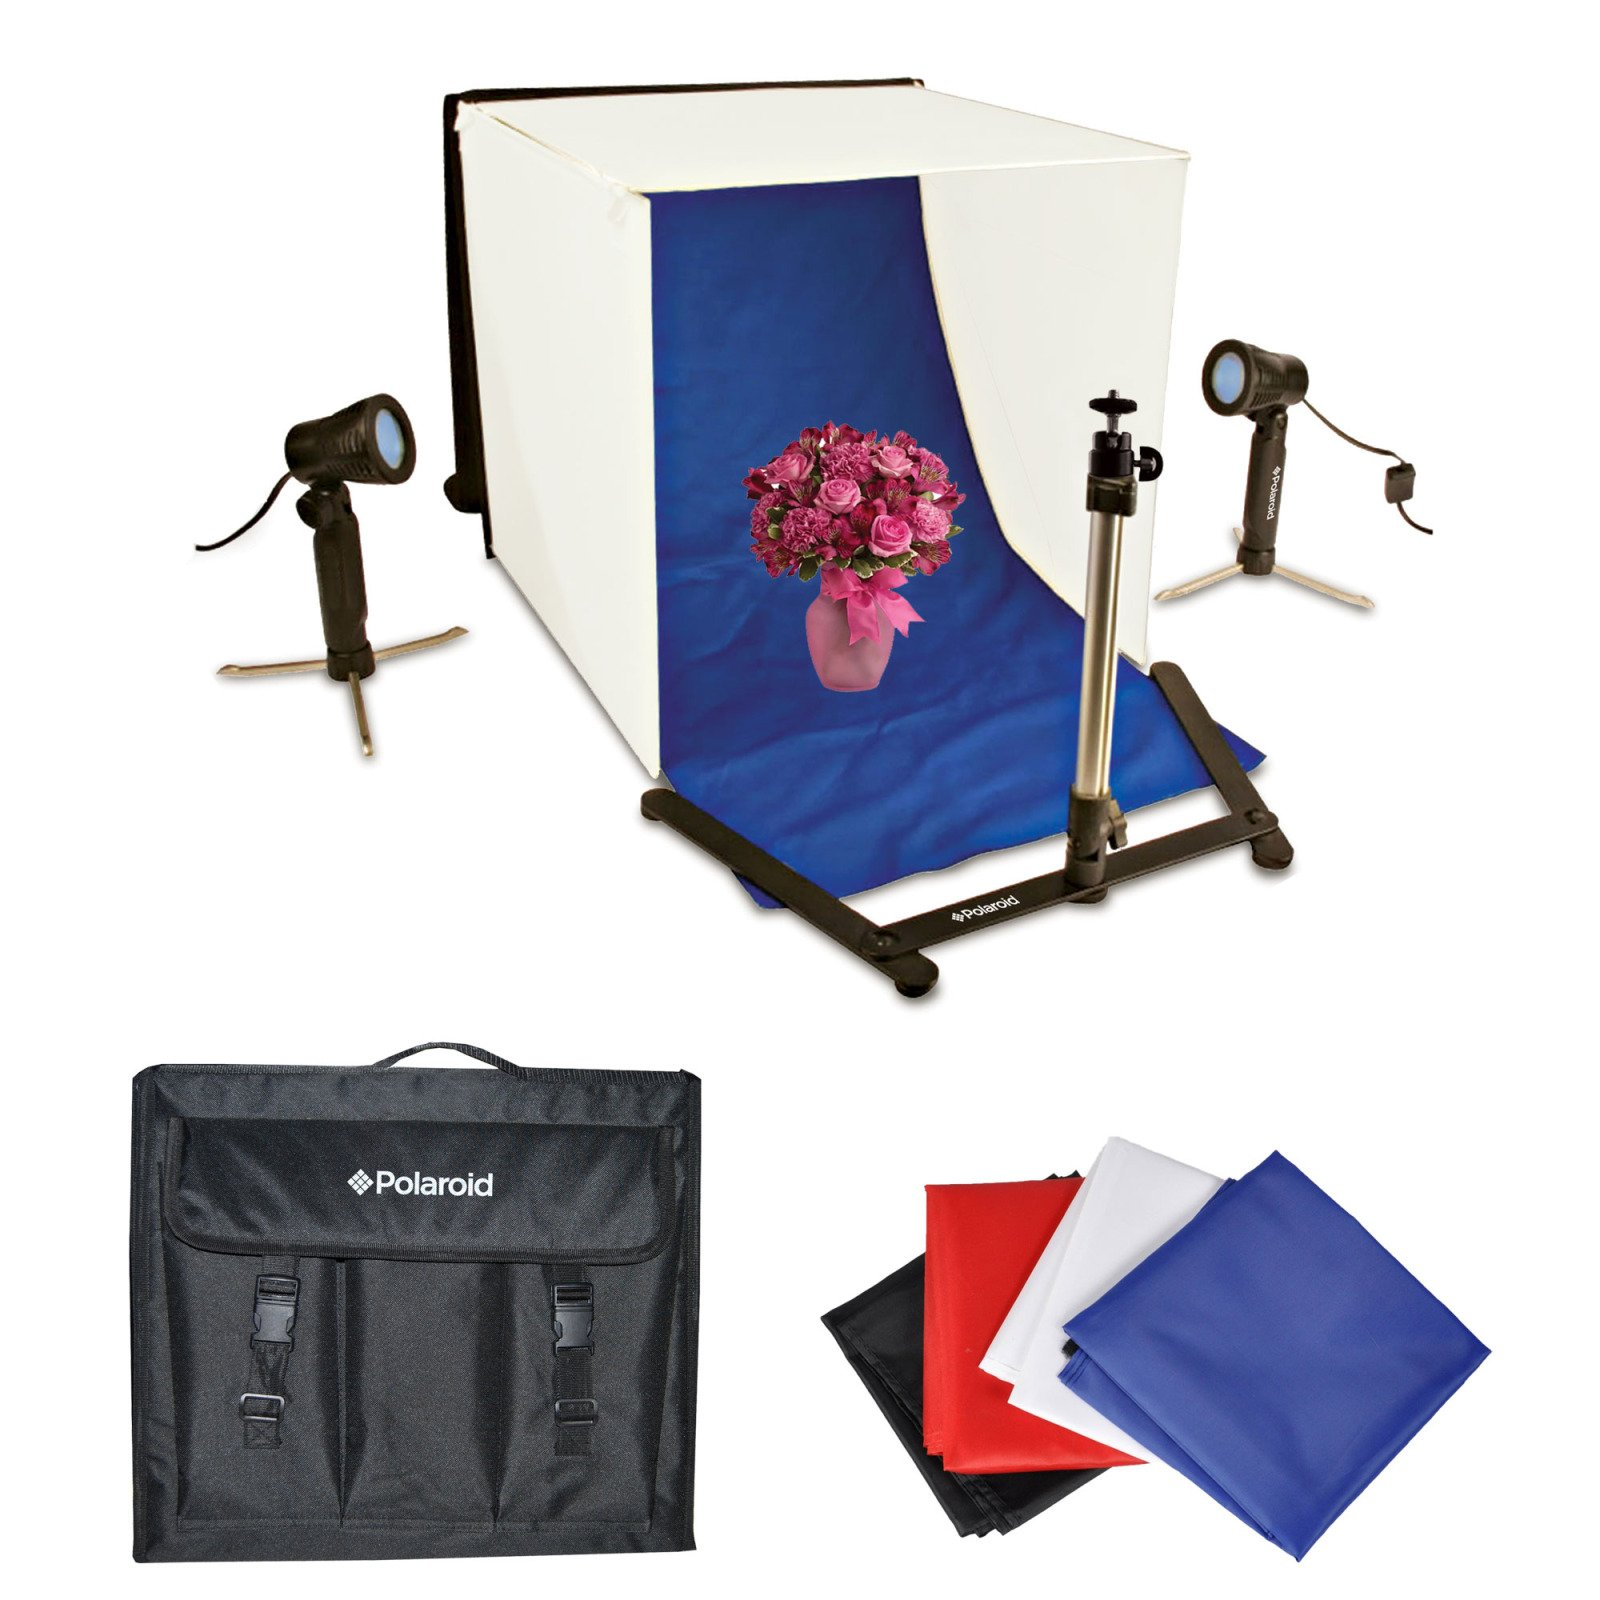 Polaroid Photo Studio Light Tent Kit, Includes 1 Tent, 2 Lights, 1 Tripod Stand, 1 Carrying Case, 4 Backdrops (Black, Blue, White, Red) by Polaroid